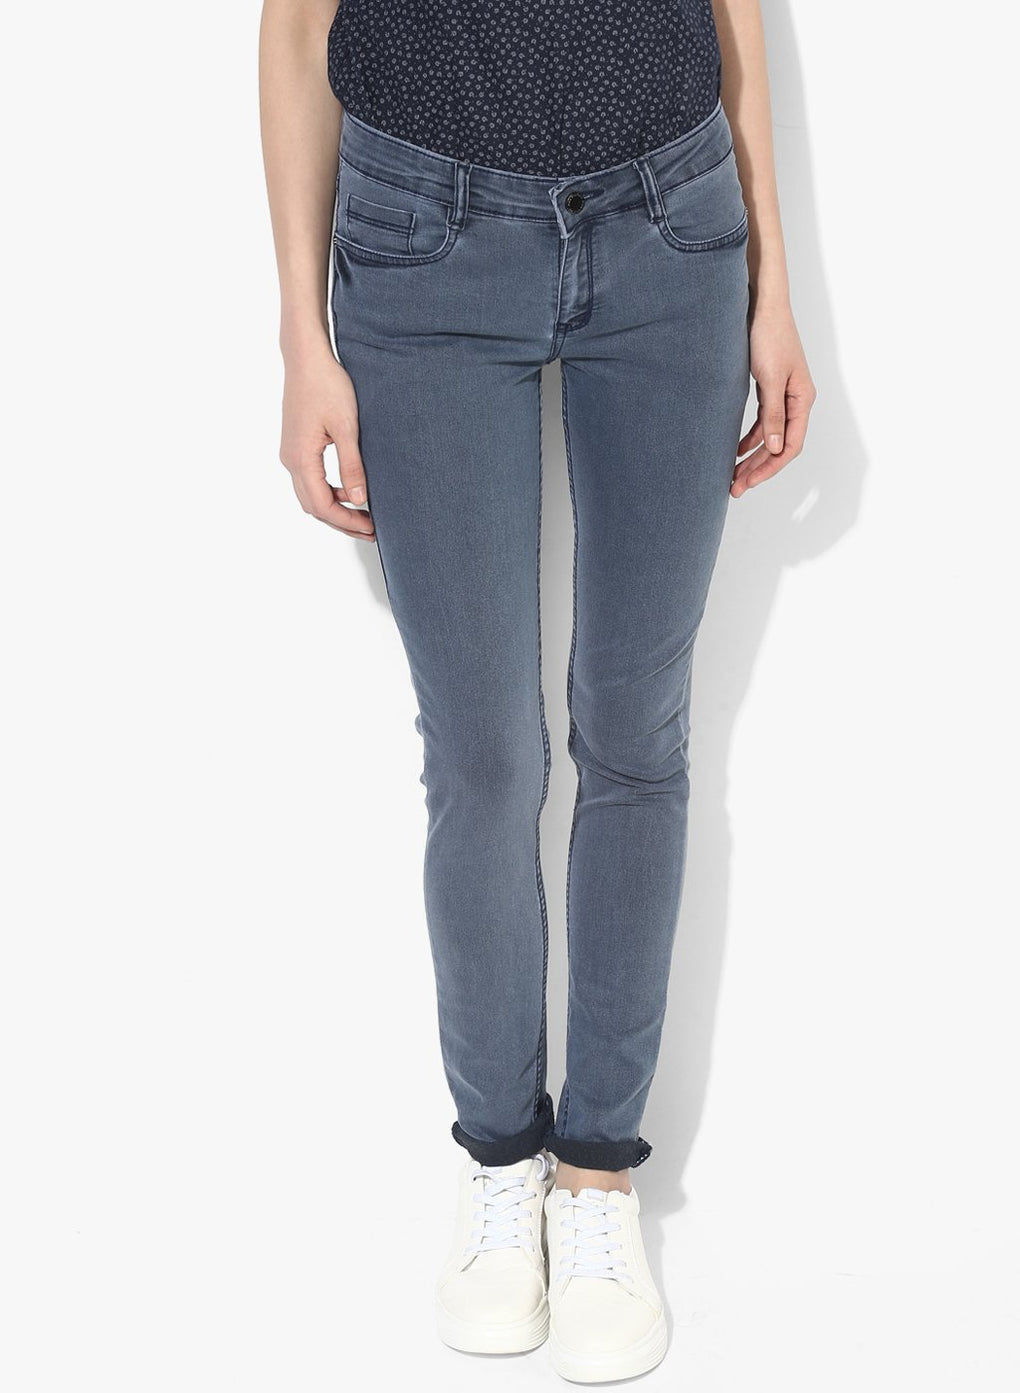 miss forever grey slim fit jeans